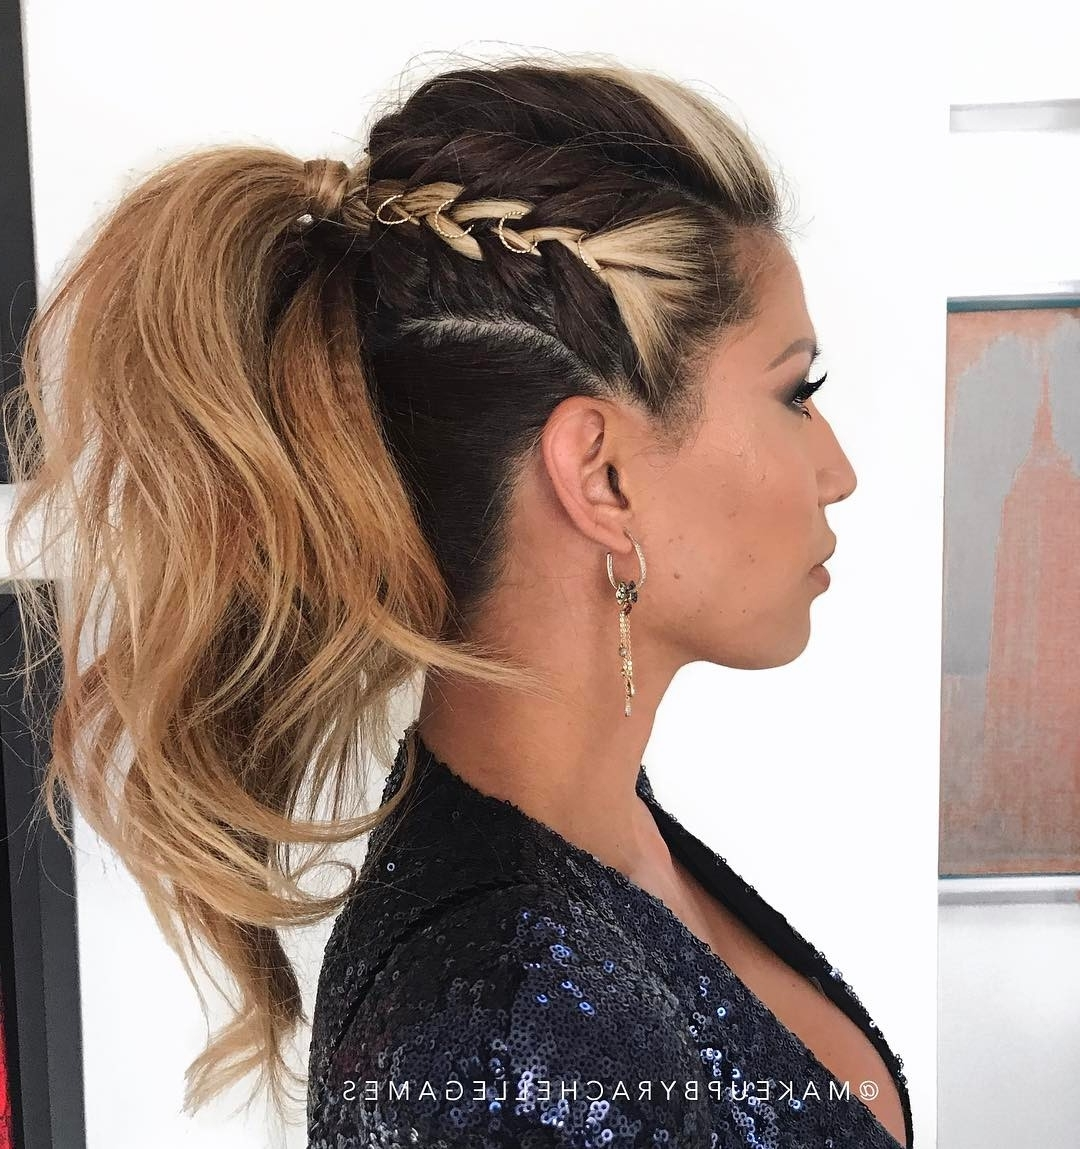 10 Ponytail Hairstyles – Pretty, Posh, Playful & Vintage Looks You With Trendy Ponytail Cascade Hairstyles (View 1 of 20)